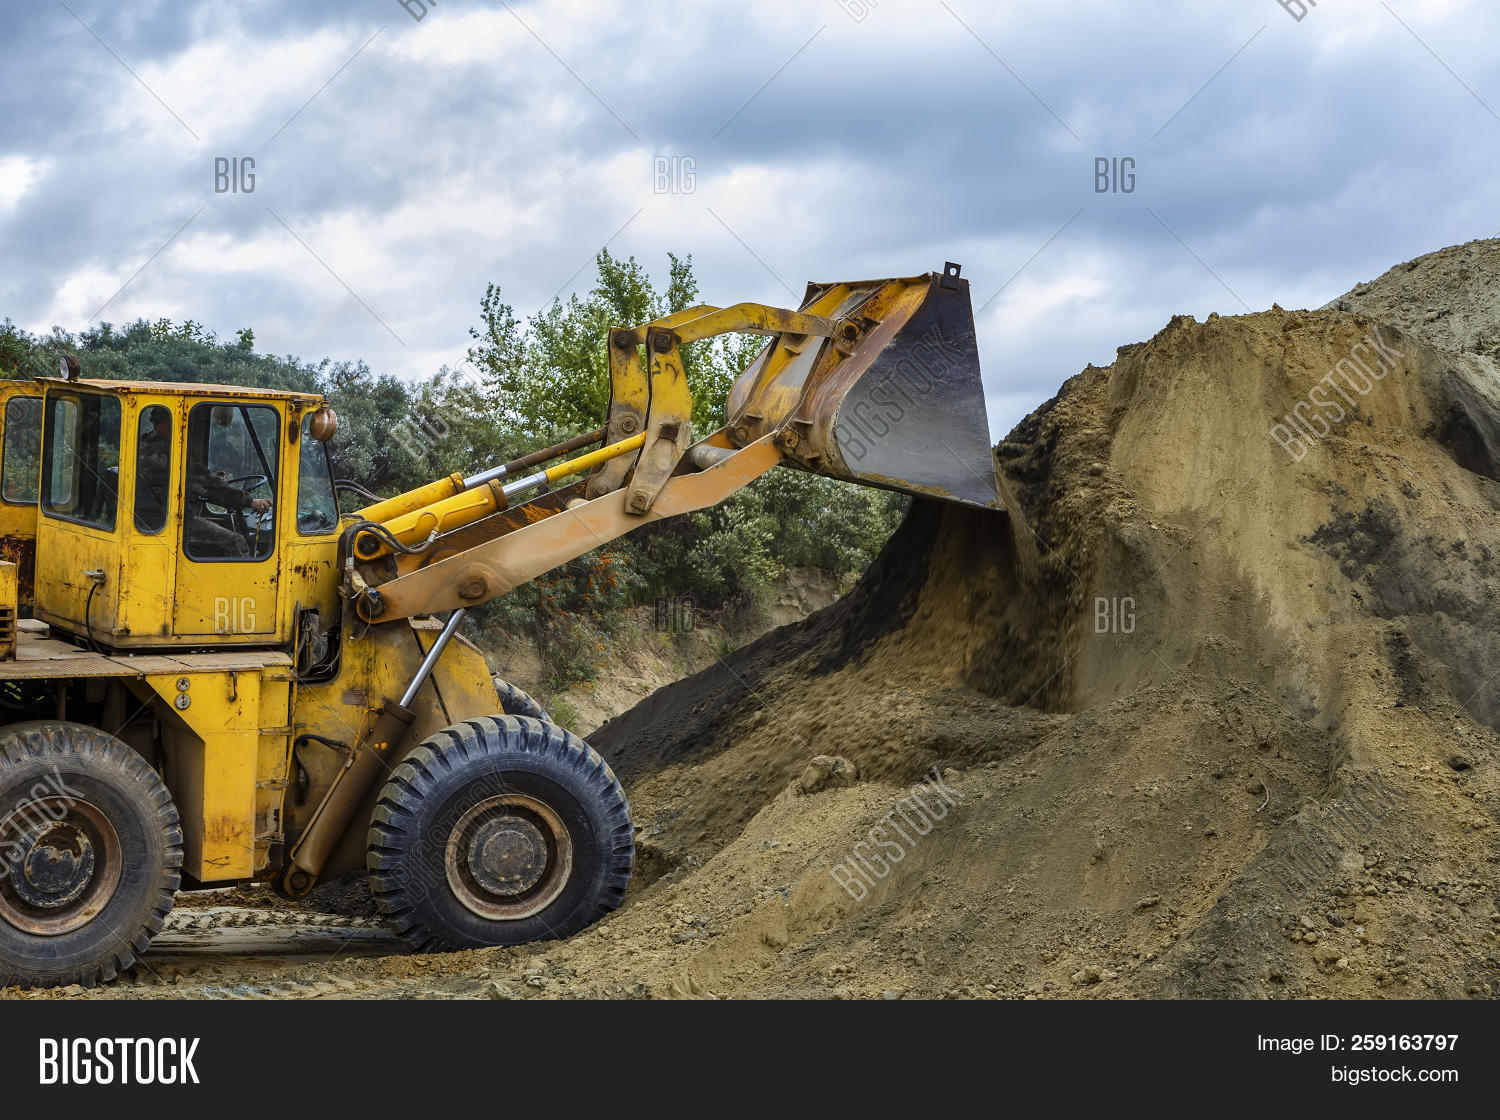 Wheel Loader Excavator Image & Photo (Free Trial) | Bigstock